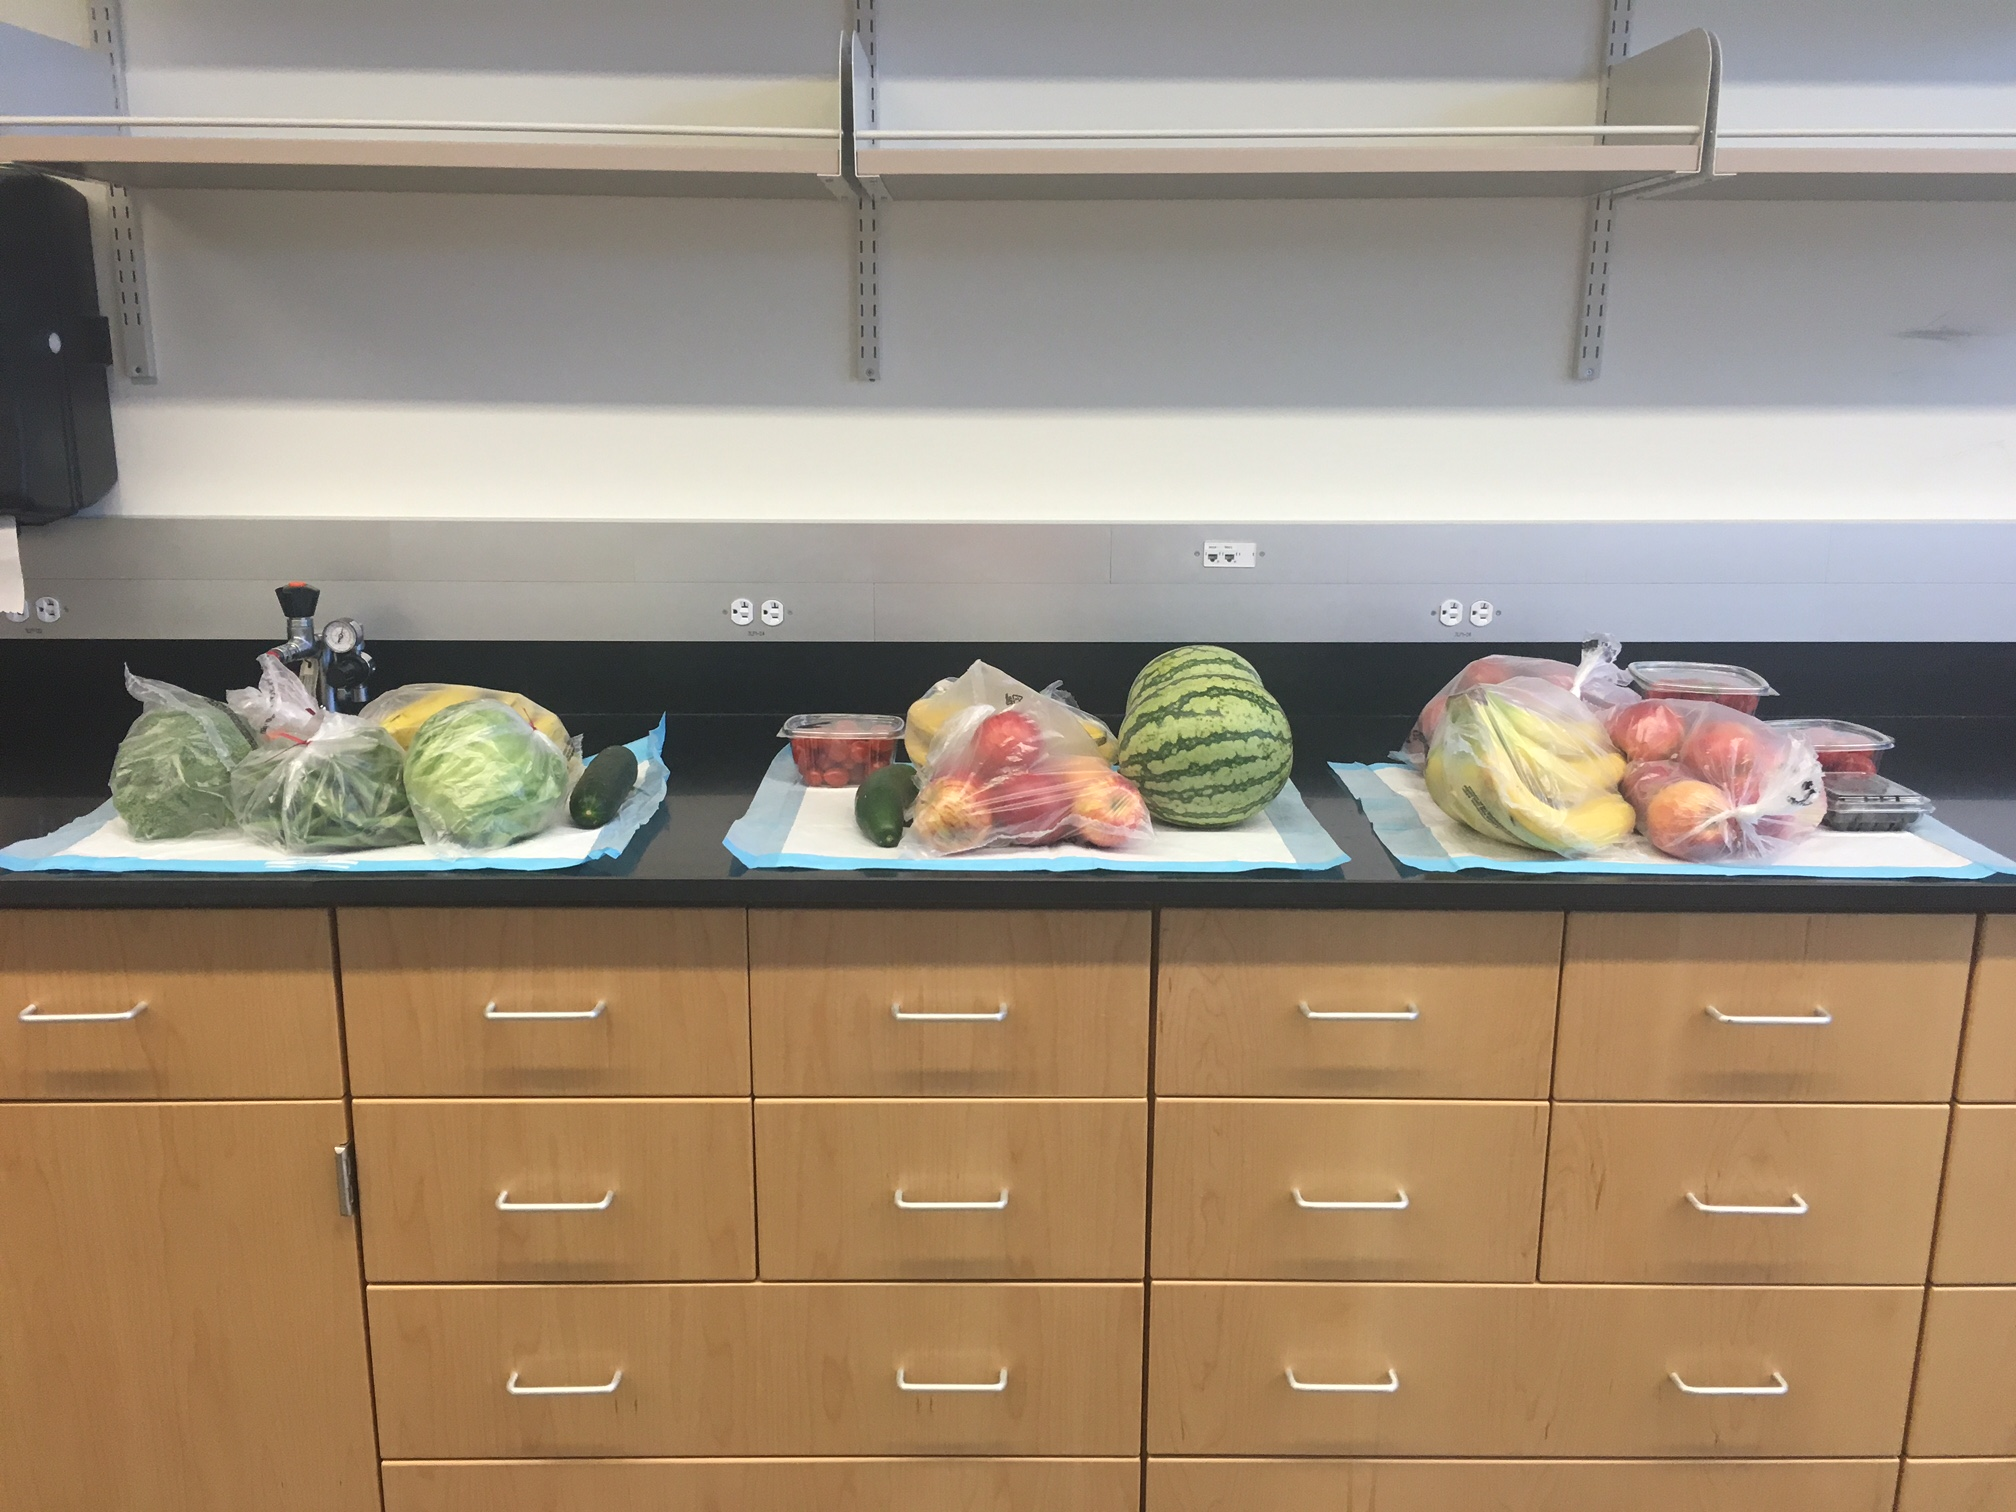 Photo of a counter with fruits and vegetables on it